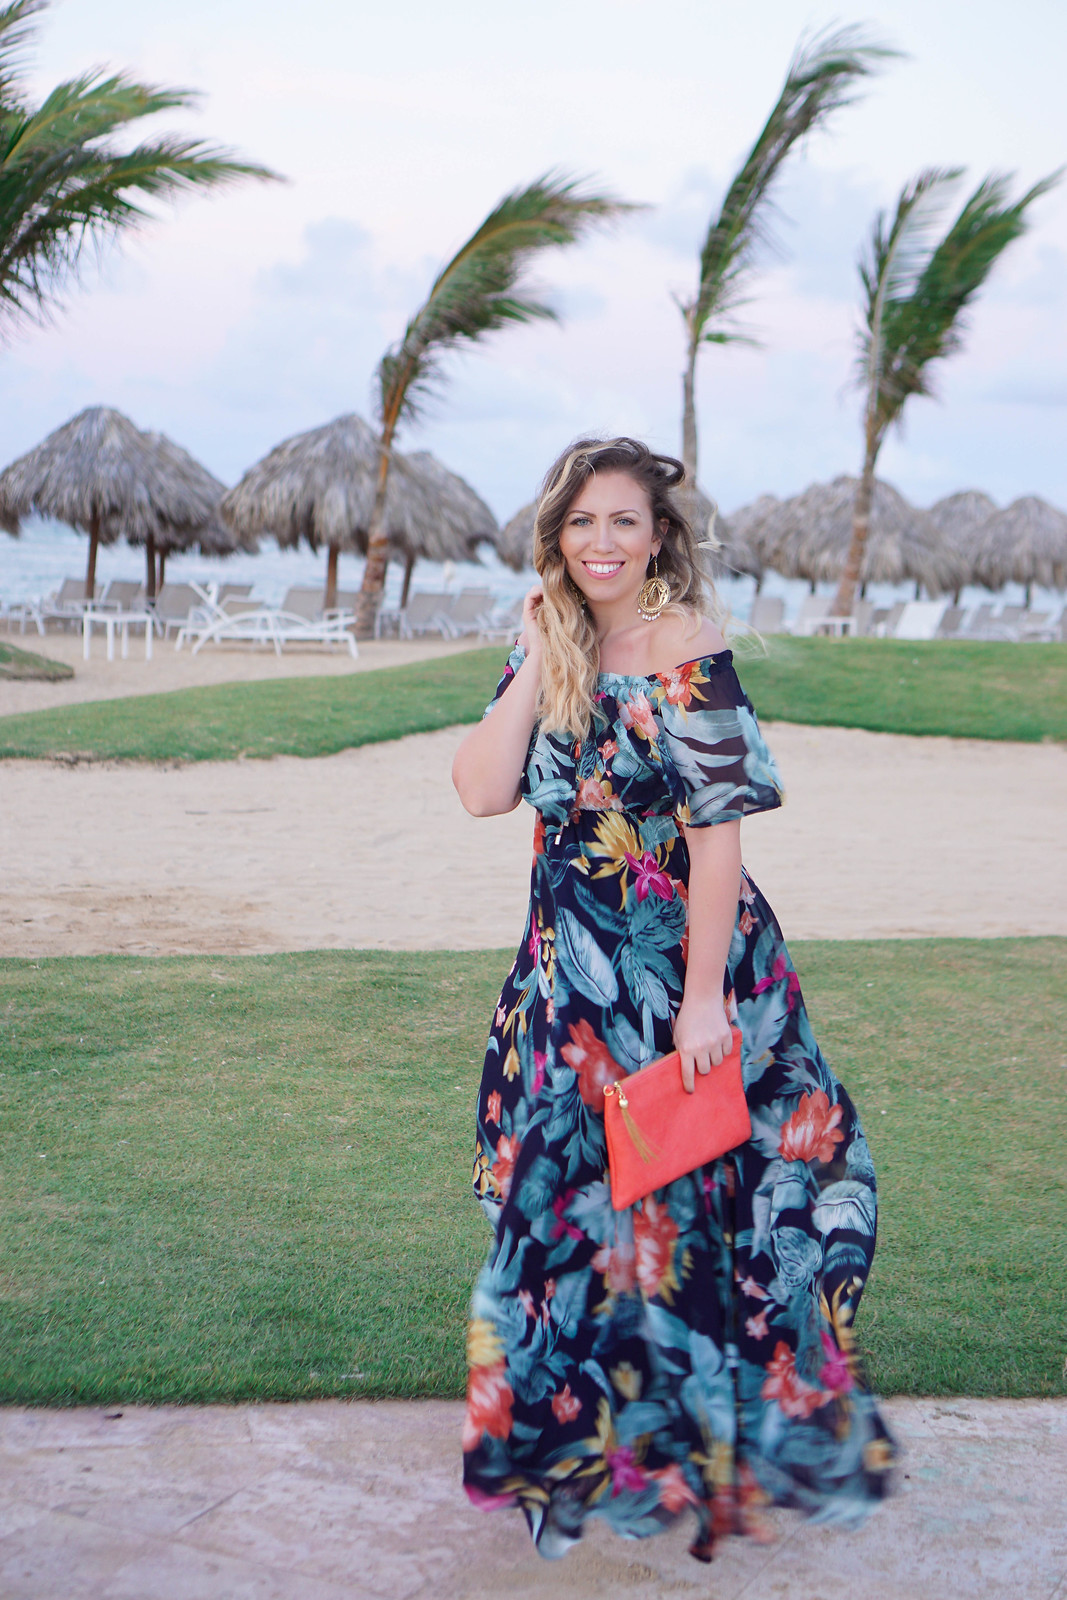 My Favorite Spring Trends Lulu's Navy Floral Print Off Shoulder Maxi Dress Now Onyx Punta Cana Dominican Republic Beach Vacation Outfit